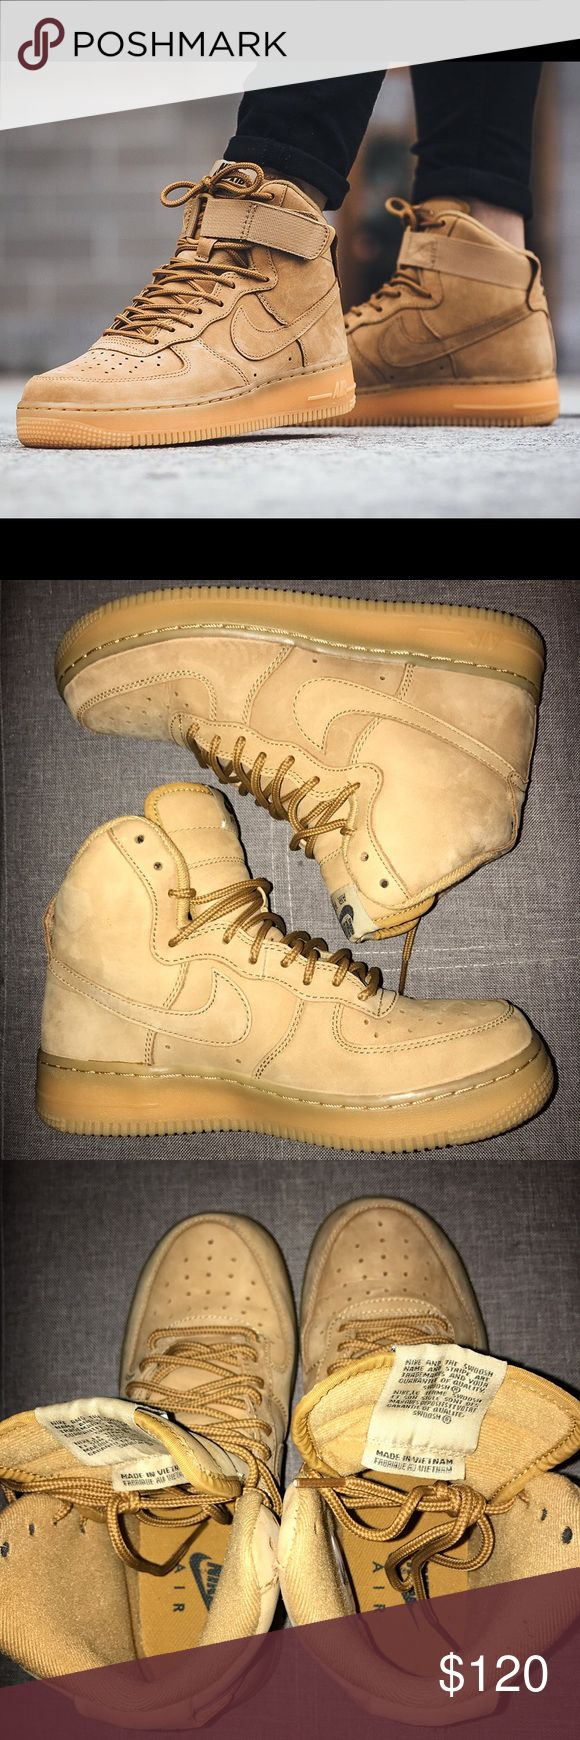 Nike Air Force 1 Flax 🛑 Price Firm! Nike Air Force 1 High in Flax. 5.5 youth = 7.5 women's. I'm a size 7 and these fit fine, a little foot space but thick socks can fix that. In very good condition. Worn twice. I have also put the straps back on. Nike Shoes Sneakers